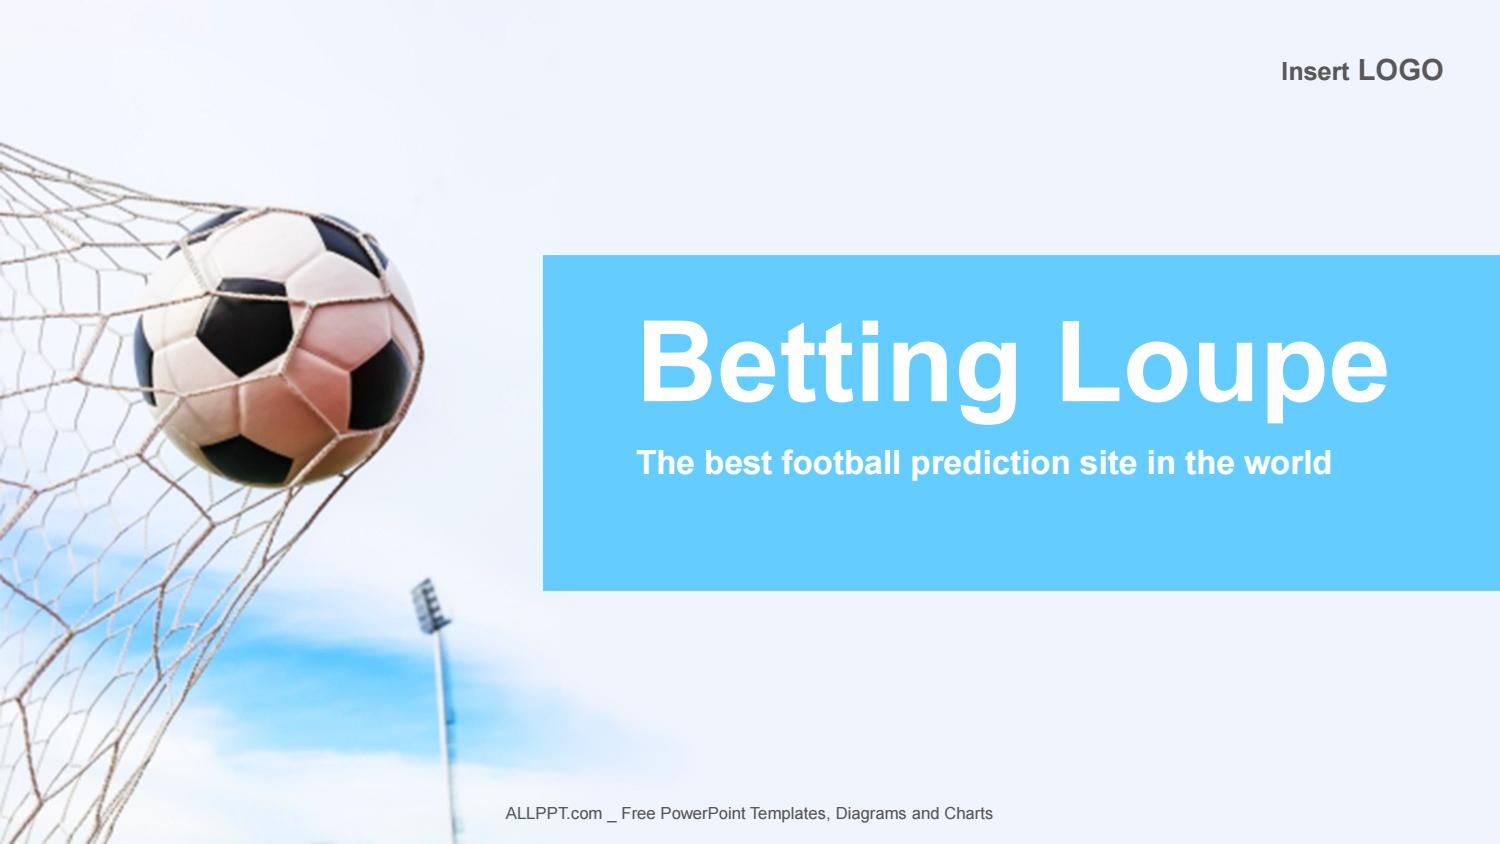 The best football prediction site in the world by Betting Loupe - issuu